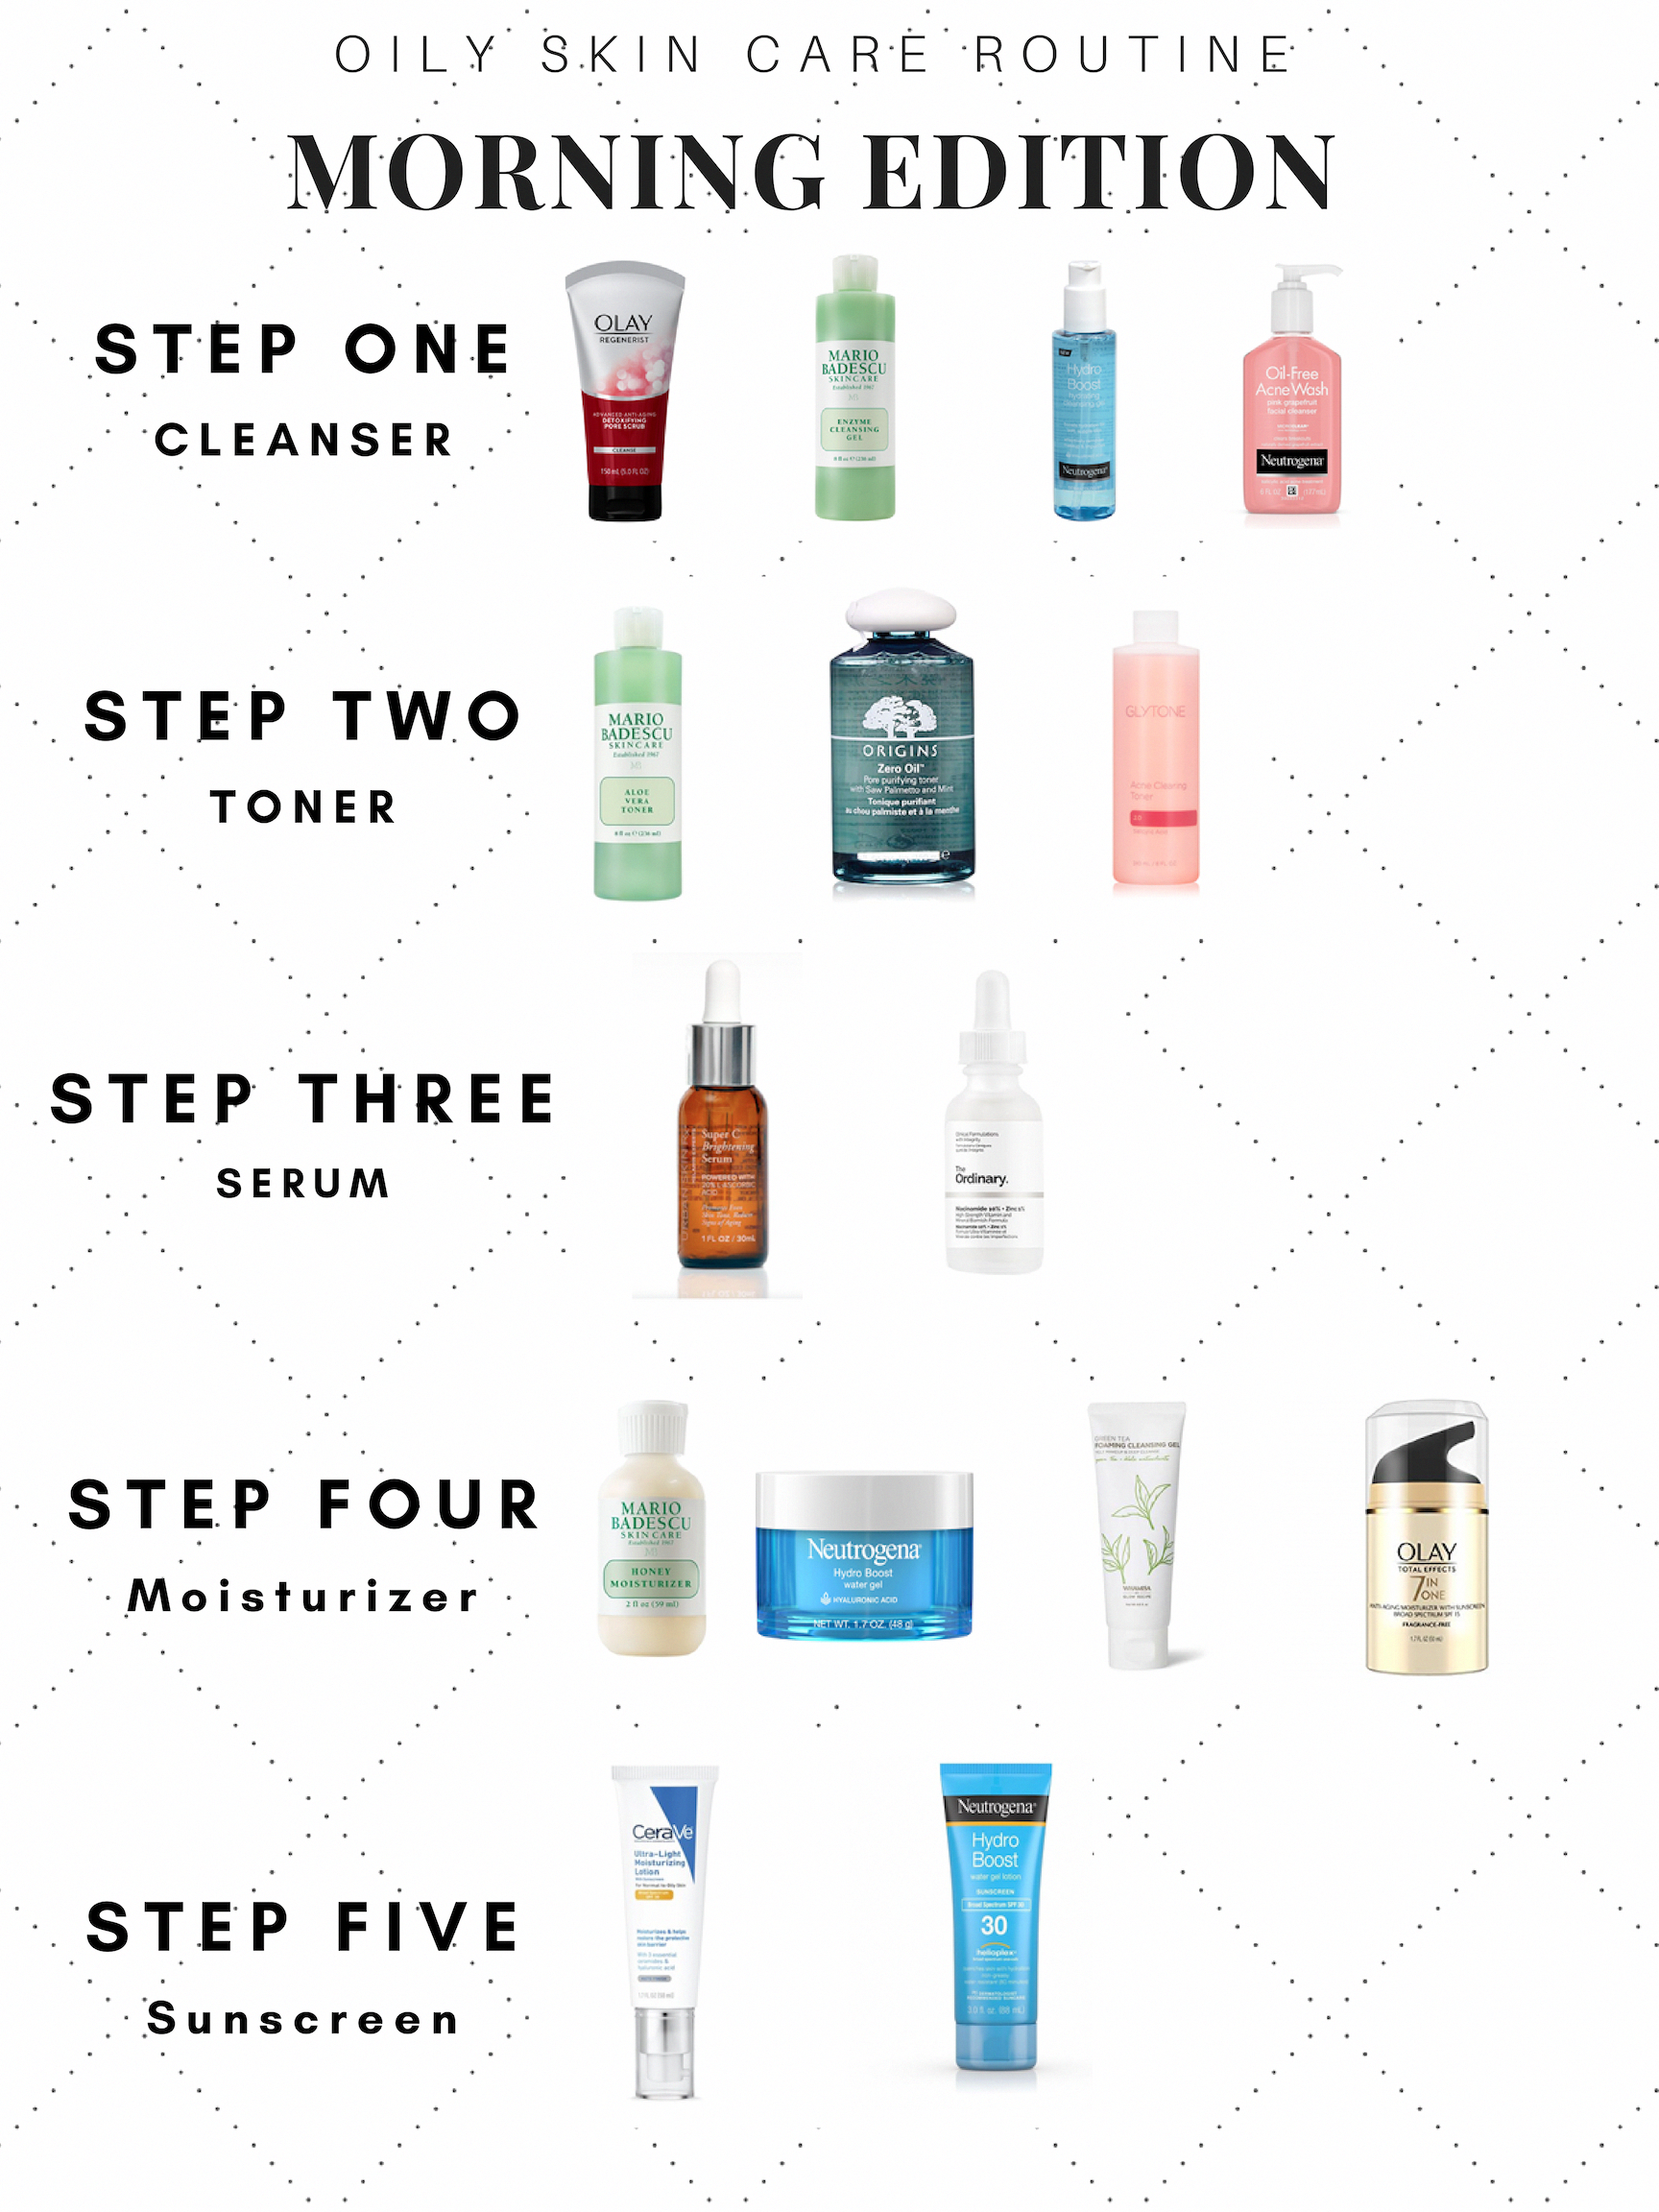 Good Skin Care Products Best Daily Skin Care Routine Best Skin Care Regimen For Late 20s 20190925 L In 2020 Skin Care Guide Oily Skin Care Skin Care Routine Steps